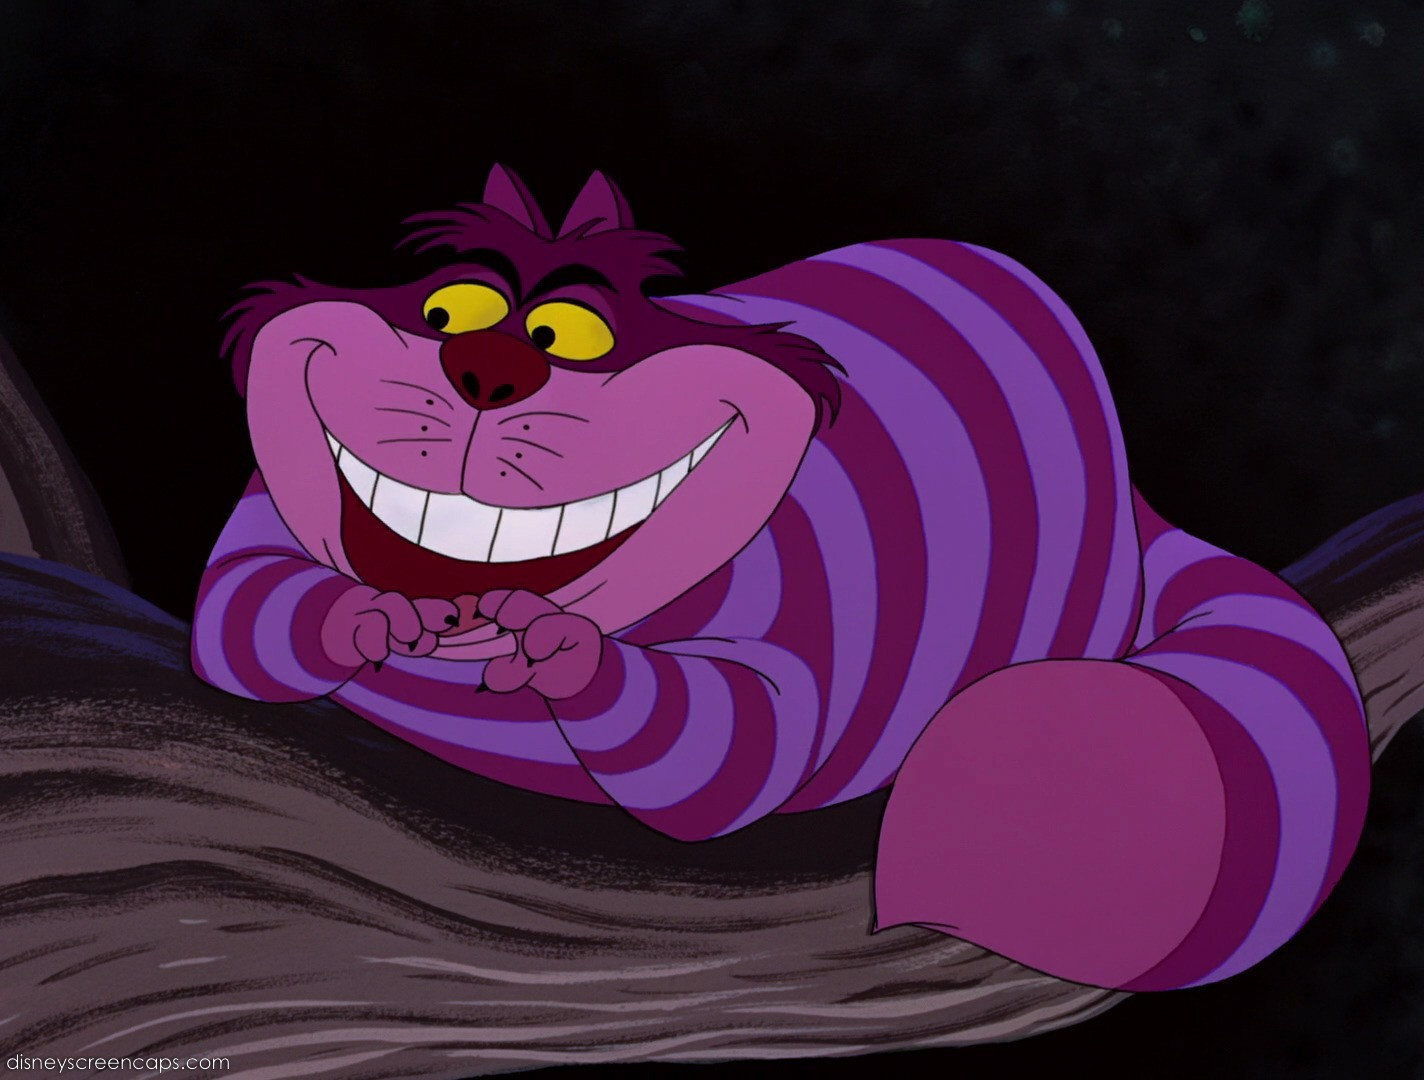 disney cheshire cat.jpg